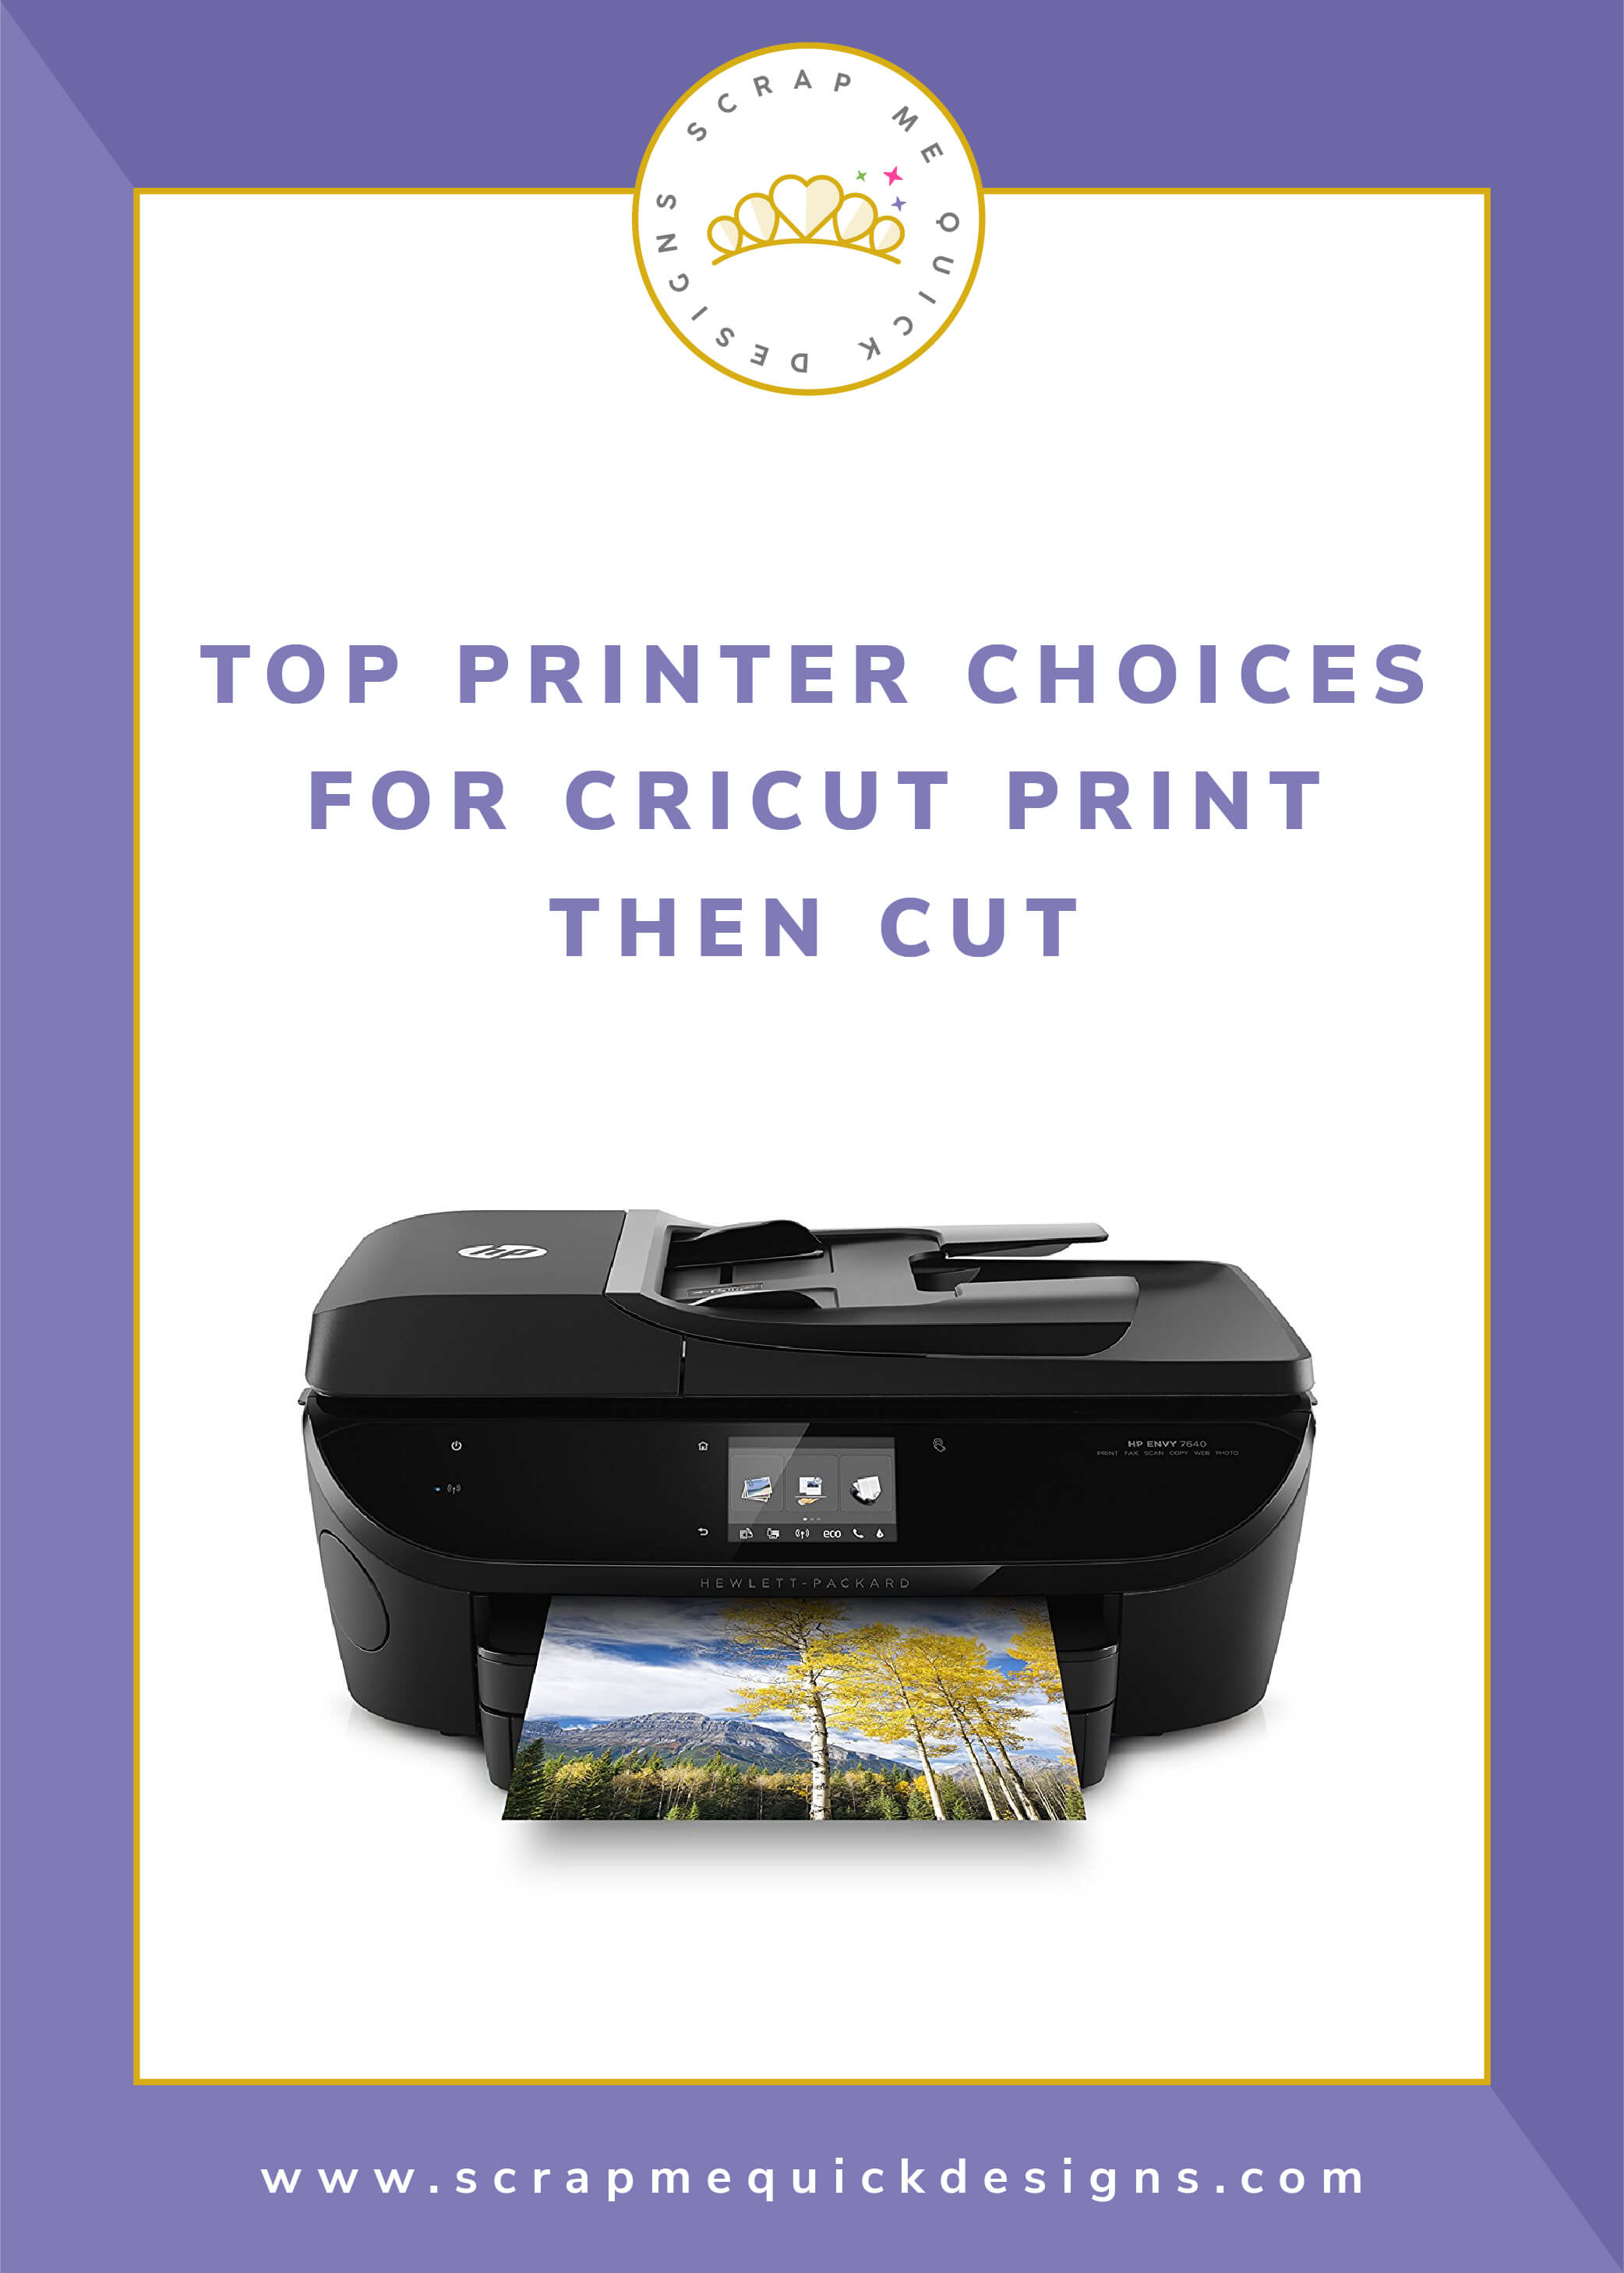 Top Printer Choices for Cricut Print Then Cut - Scrap Me